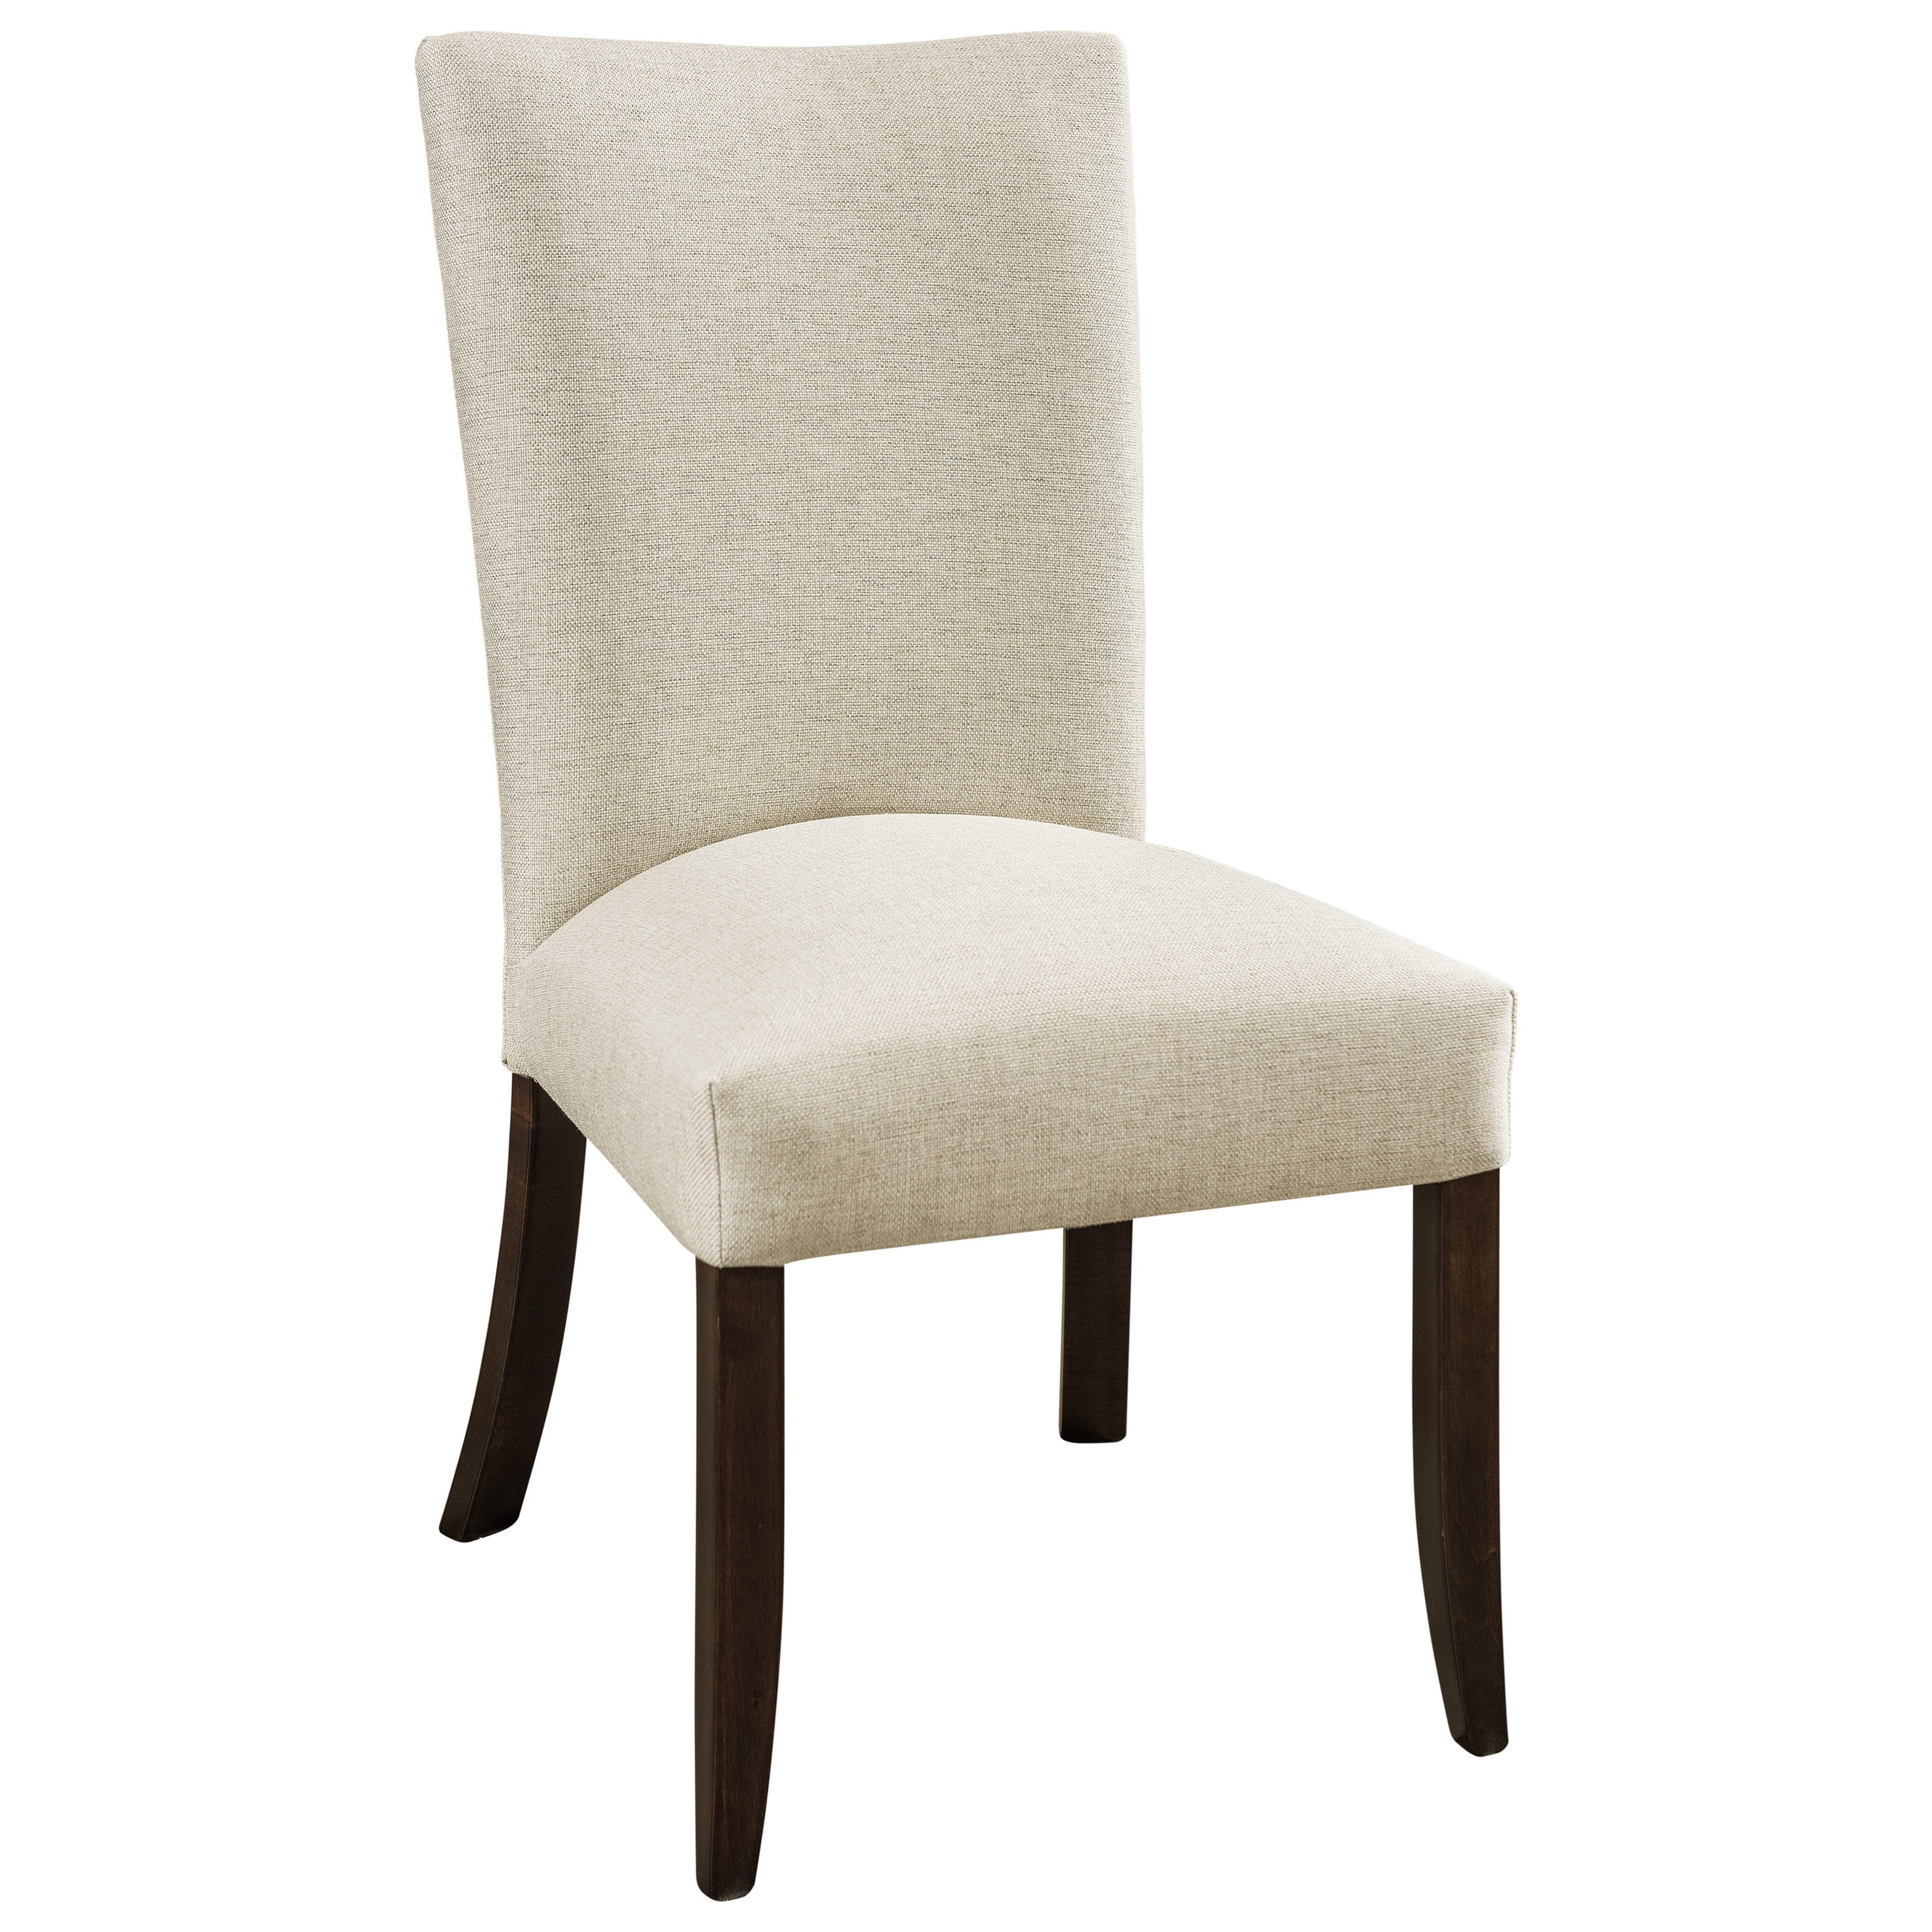 Trenton Customizable Solid Wood Side Chair by F&N Woodworking at Saugerties Furniture Mart